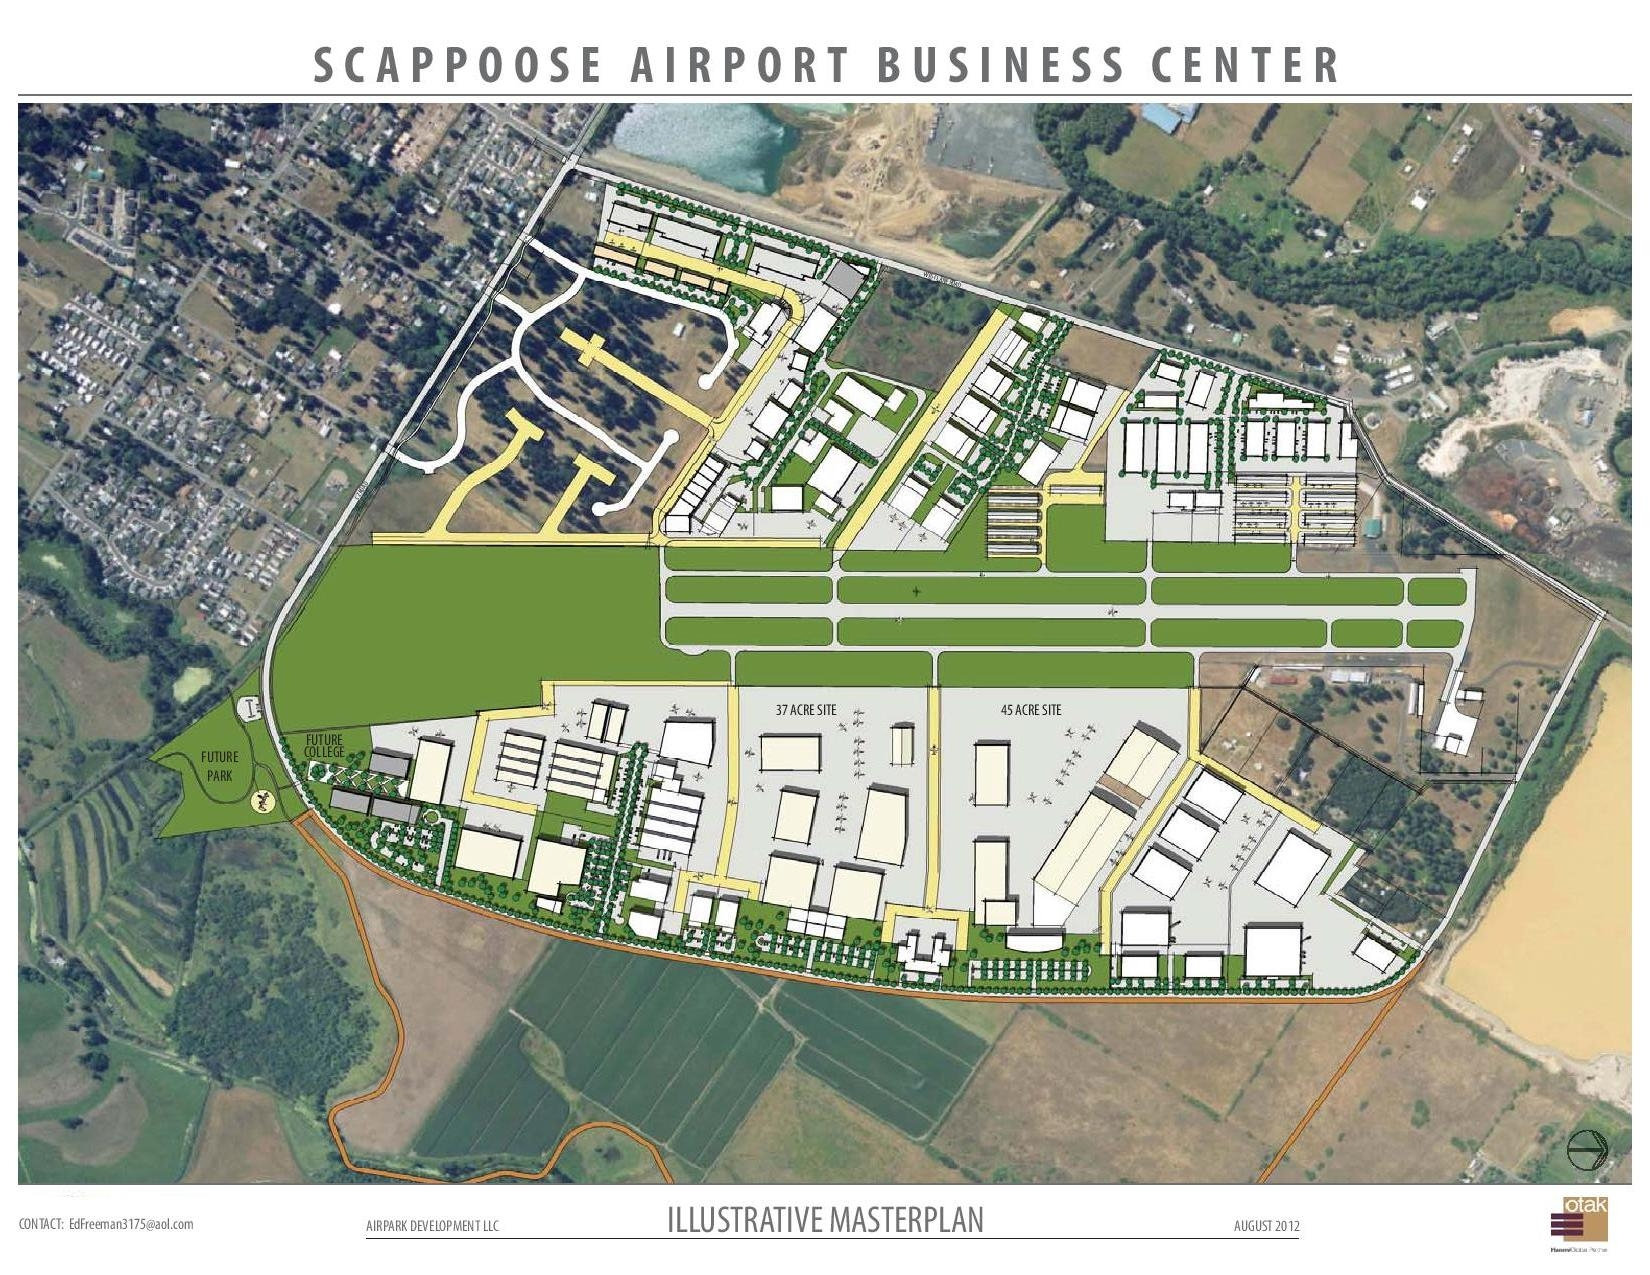 Scappoose Airport Business Center Airpark Master Plan